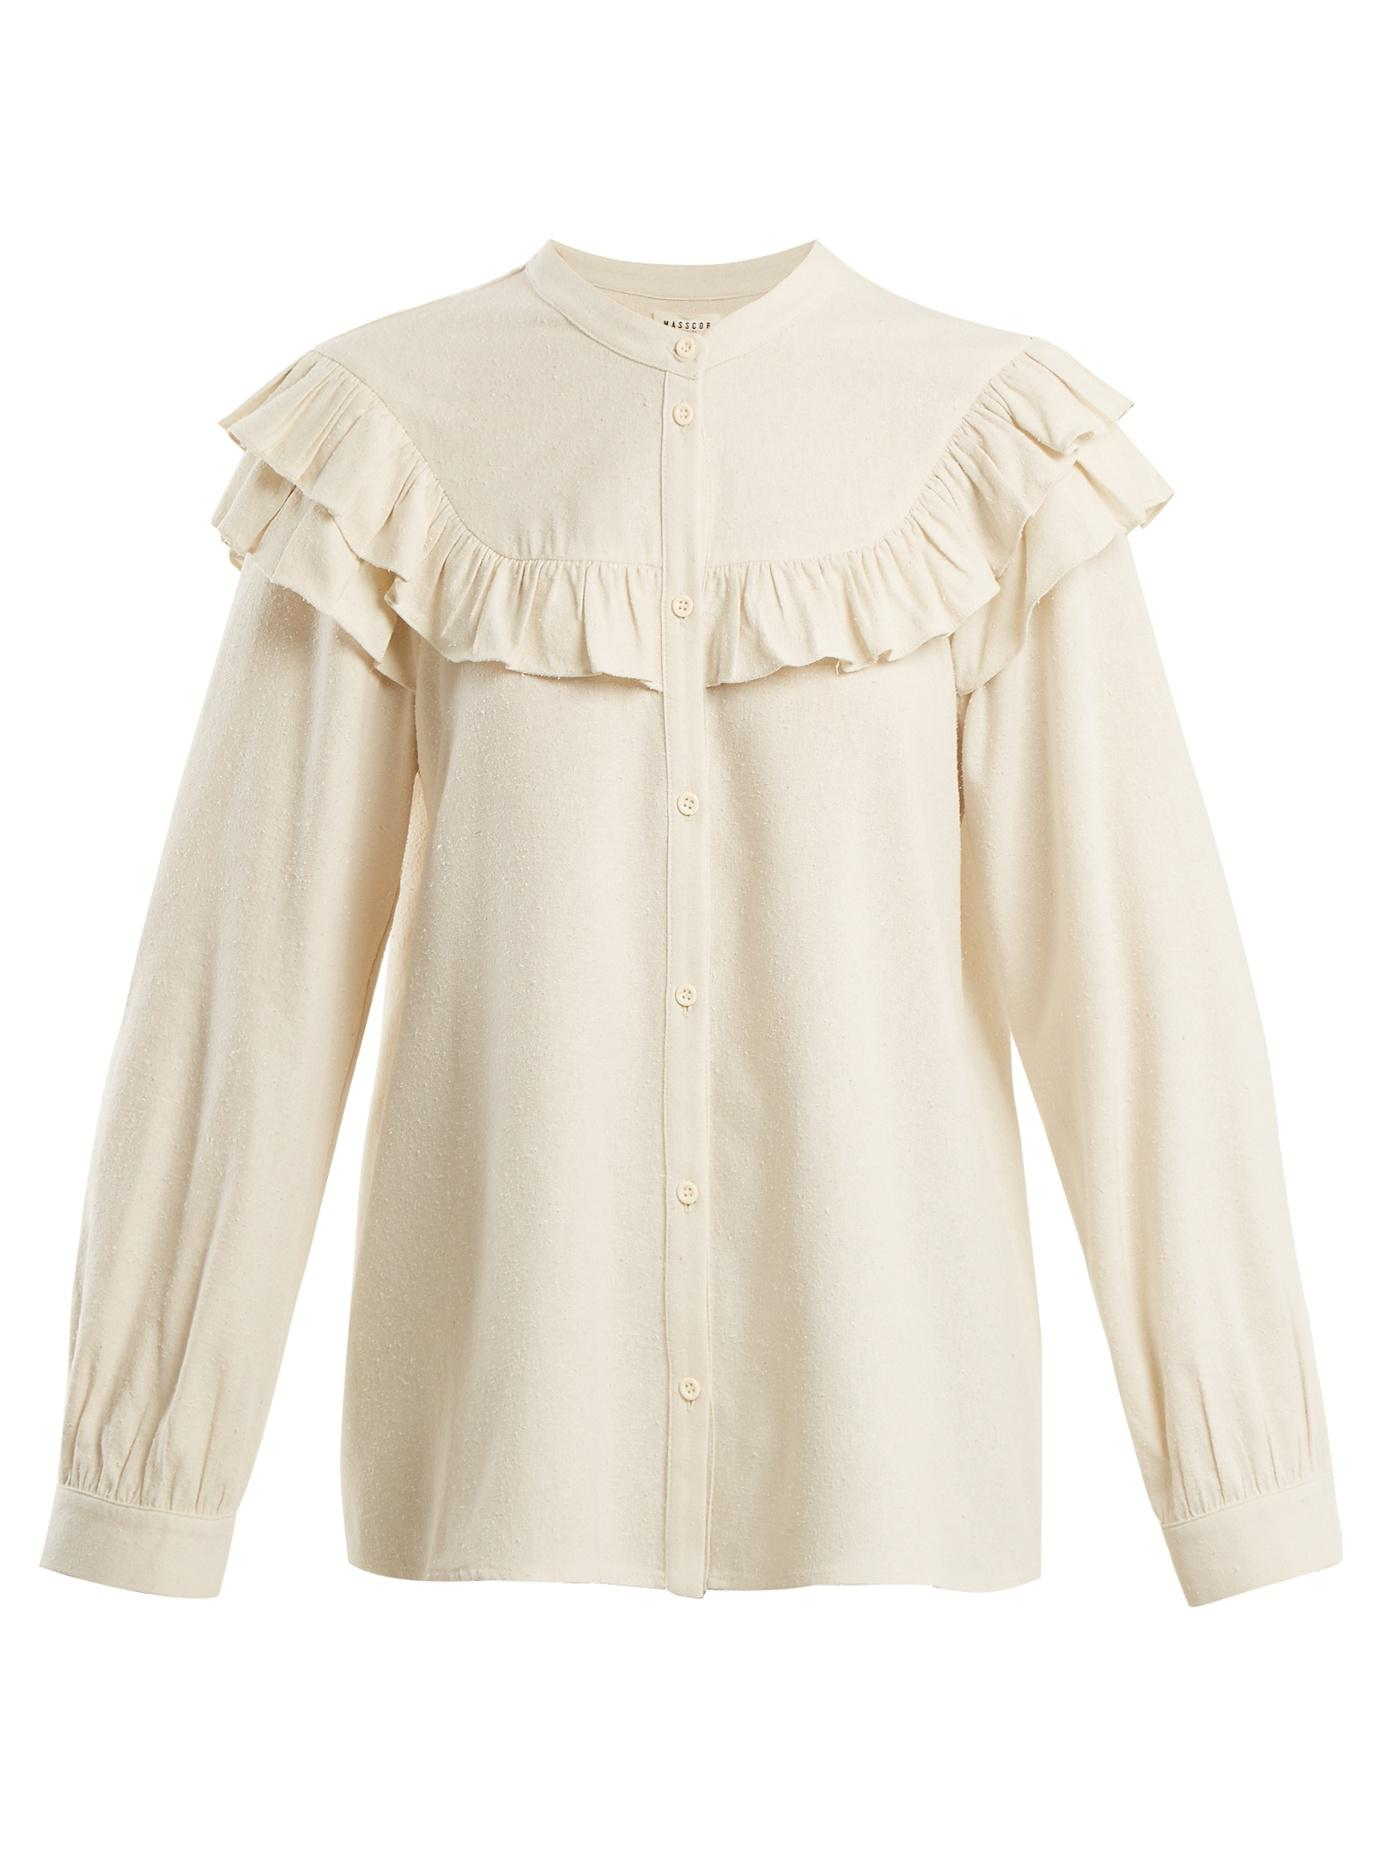 Official Site For Sale Cheap Sale Extremely Frill-trimmed raw-silk blouse Masscob Clearance Online Comfortable Sale Online pV3Hu22